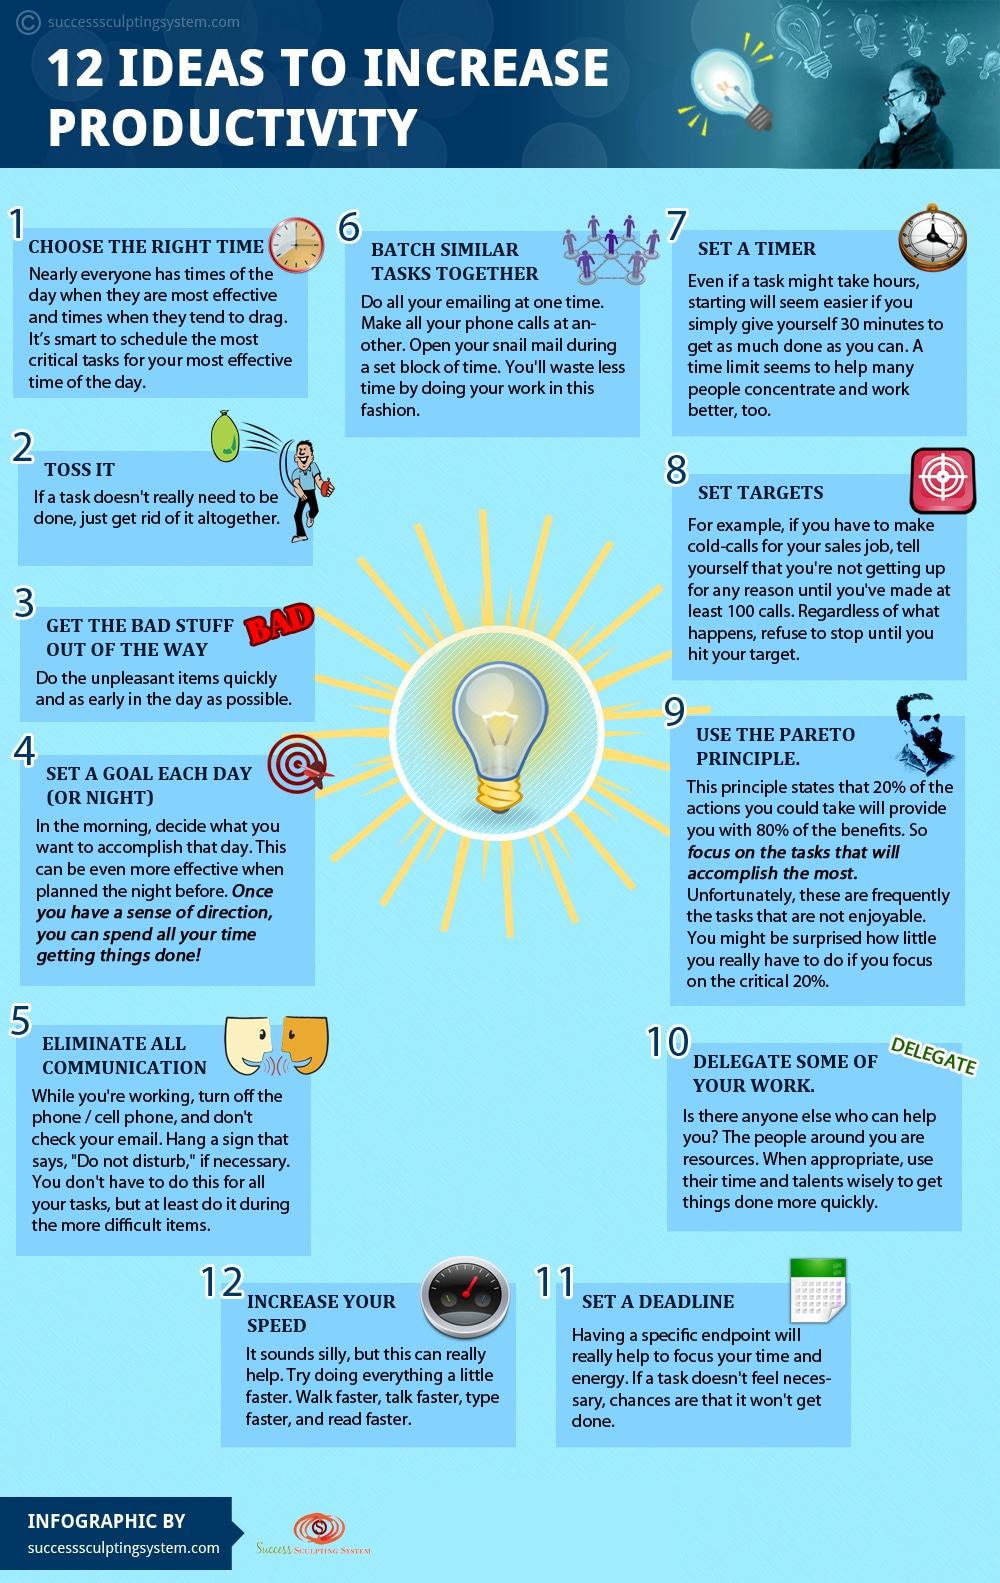 increase-productivity-tips-guide-infographic